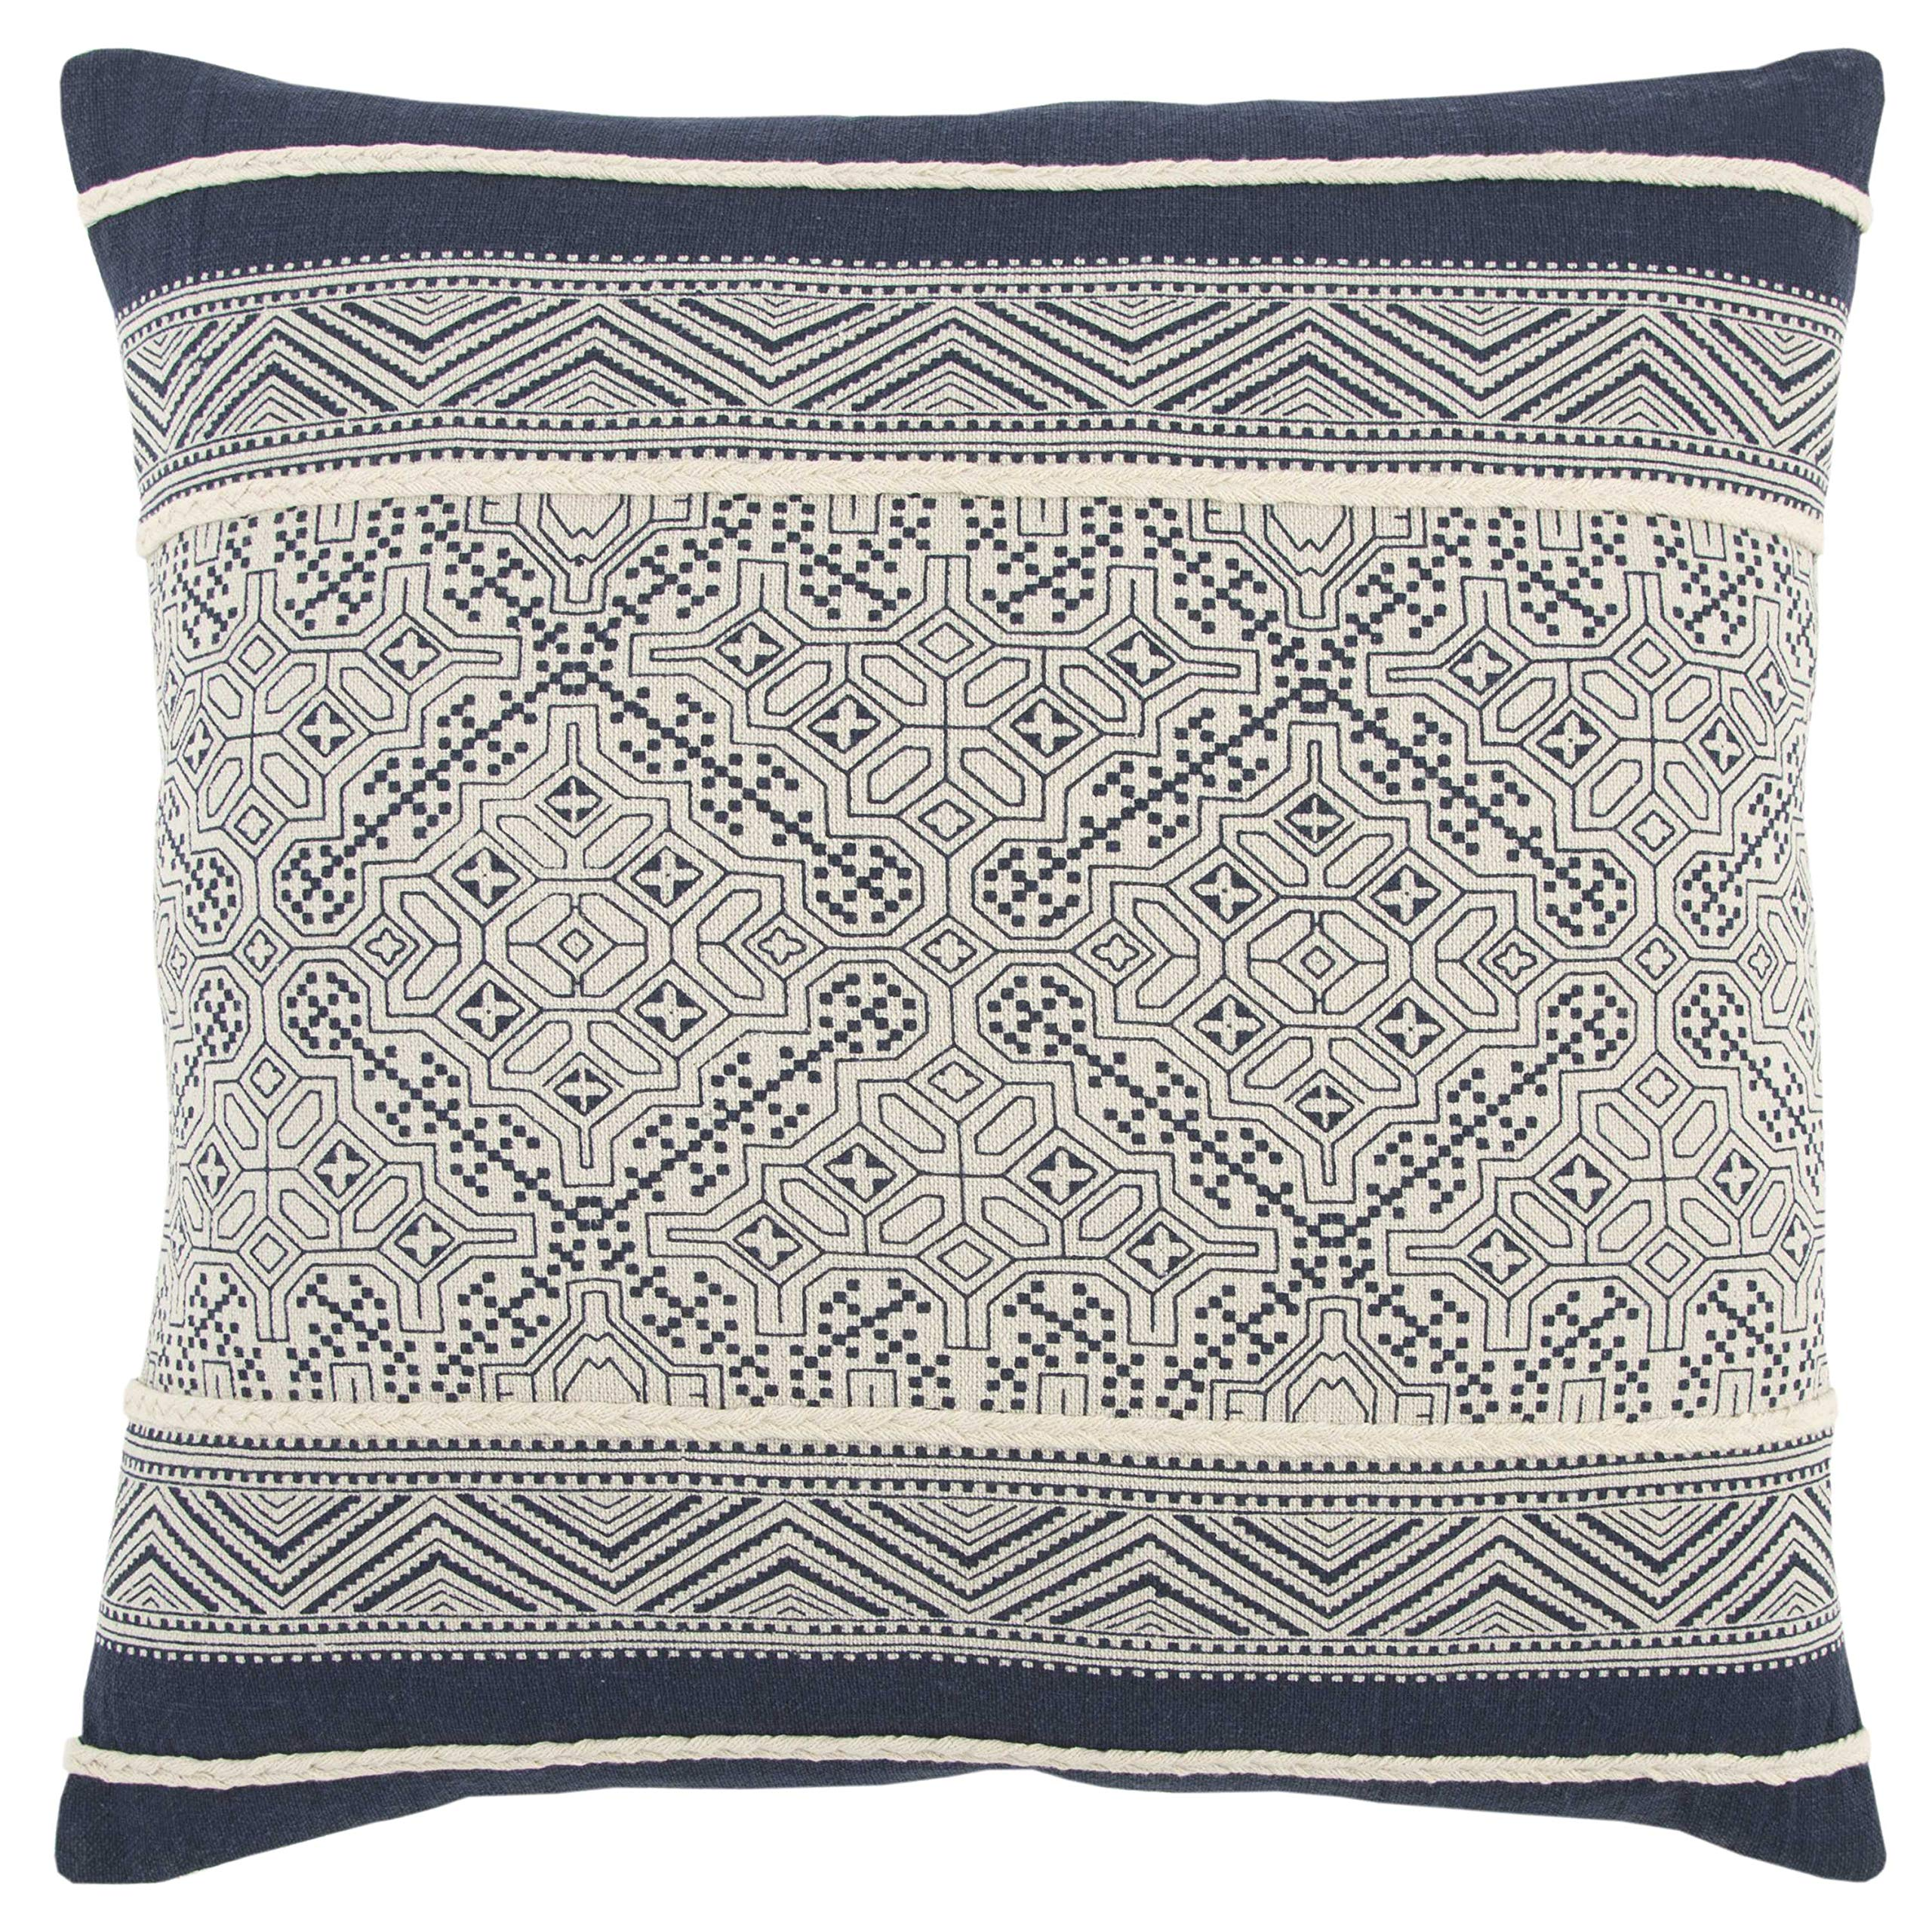 Rizzy Home Throw Pillow, 20'' x 20'', Dk Blue/Ivory